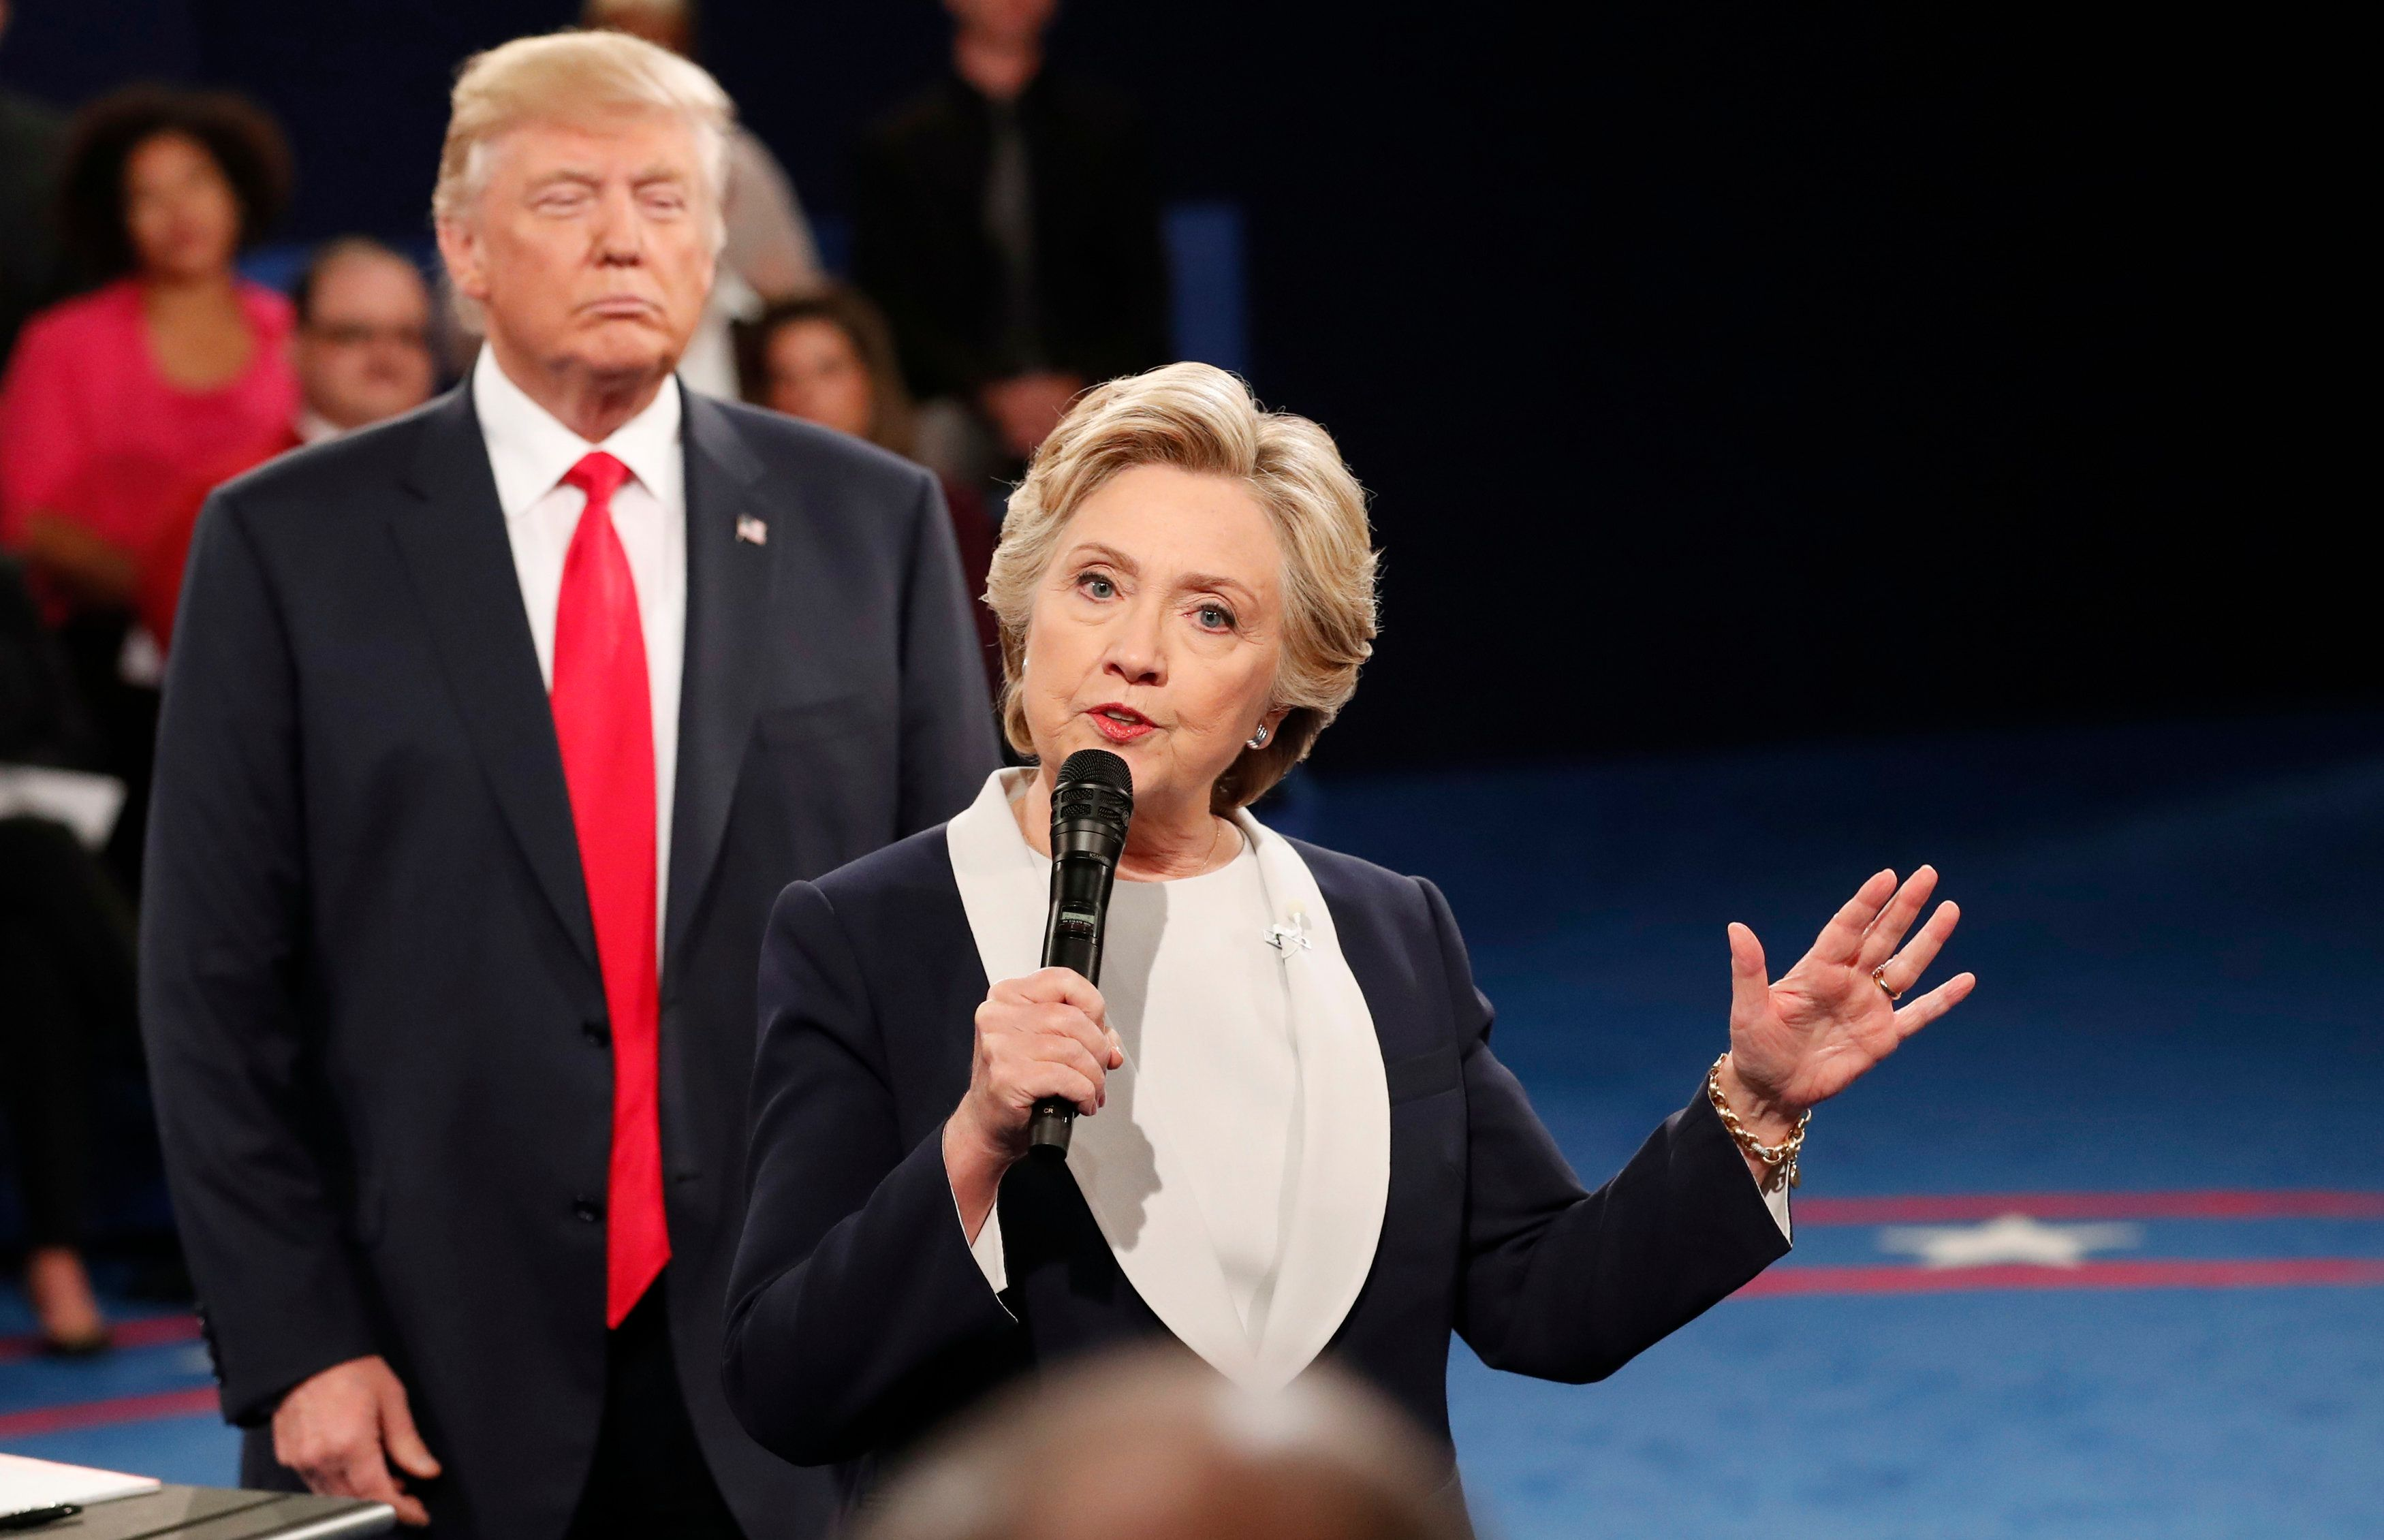 Republican U.S. presidential nominee Donald Trump listnes as Democratic nominee Hillary Clinton answers a question from the audience during their presidential town hall debate at Washington University in St. Louis, Missouri, U.S., October 9, 2016. REUTERS/Rick Wilking